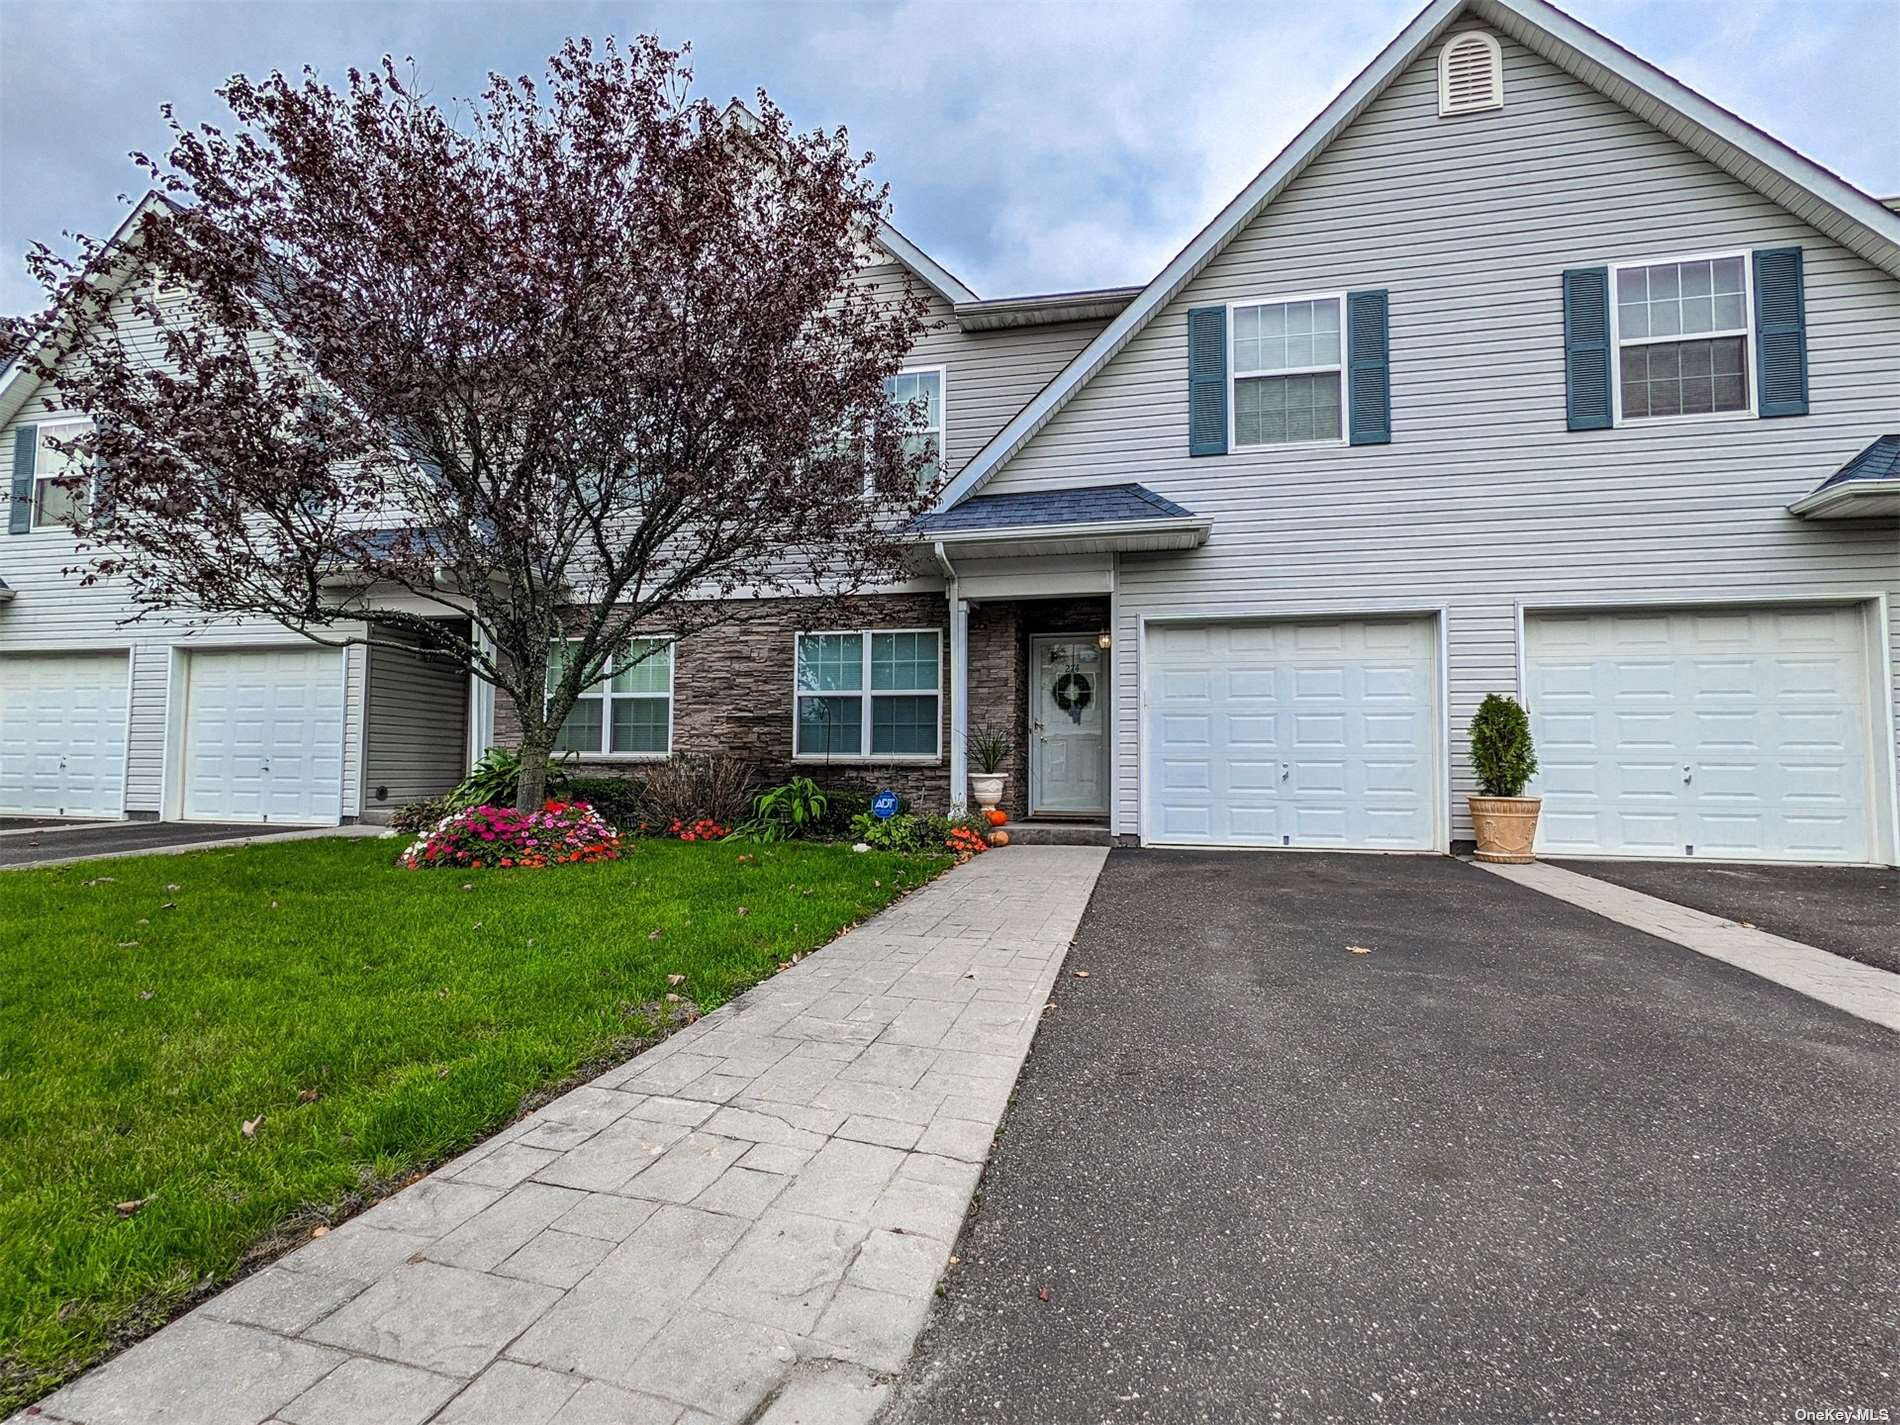 Look no further than this absolute stunner in the Islip Landings Community! Completely custom throughout, this over 2200sqft Townhouse has details upon details. Custom Lighting, moulding, and other touches greet you throughout the entire home. The main floor features an entry foyer, hardwood floors, an office or 4th bedroom, dining room, spacious living room with cathedral ceilings and a gorgeous led chandelier, huge custom kitchen, and entry to the backyard patio and 1-car garage. The second floor features a Master Bedroom with Full Bath en-Suite, 2 additional bedrooms, Full Bath, and Laundry. The full finished basement is a great hangout, with movie theatre setup, 1/2 Bath, and Storage. Amenities include in-ground heated pool, clubhouse, and gym, as well as on site security. This is a must see!!!